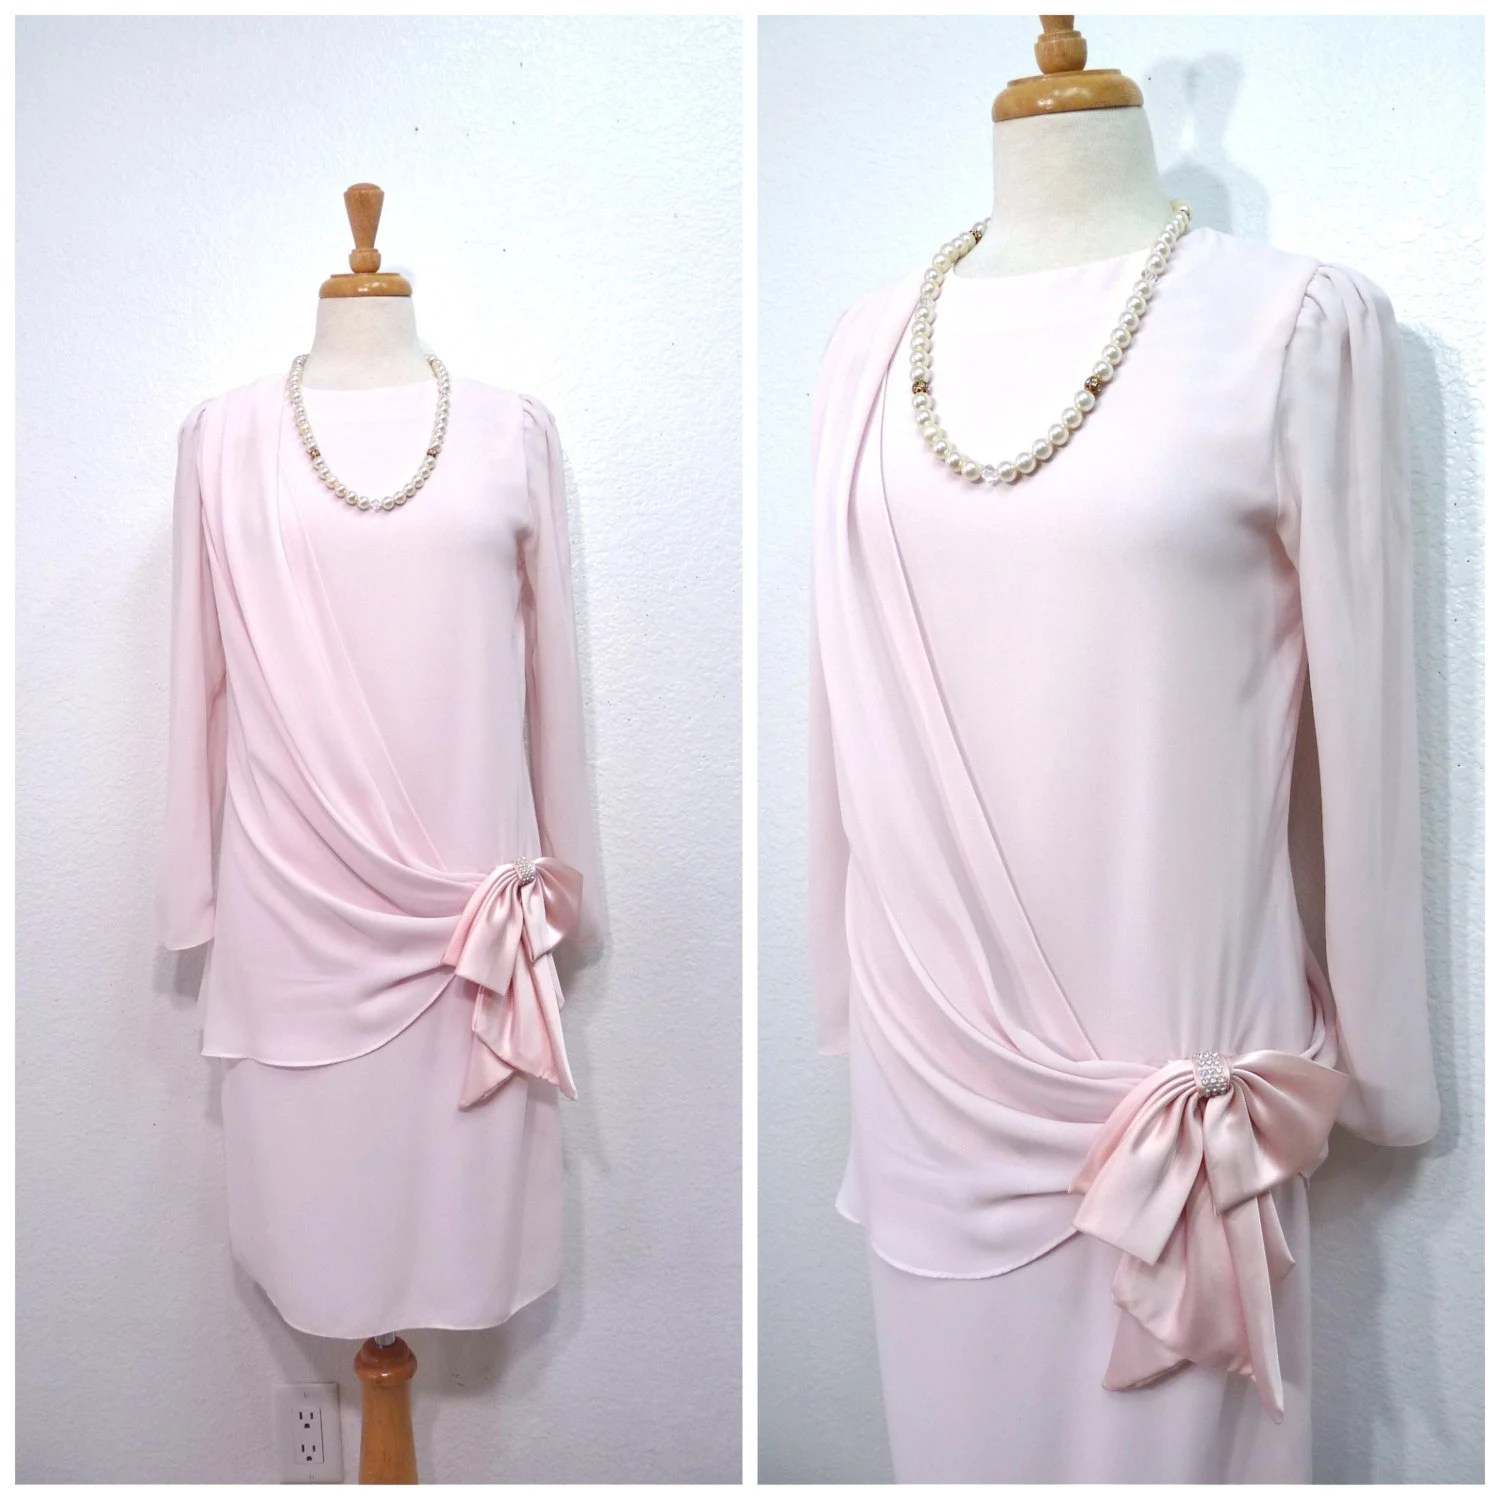 Vintage 1980s Sheer Pastel Pink Flapper Dress Satin Bow Rhinestone Sleeve Cocktail Party Size Small - KMalinkaVintage